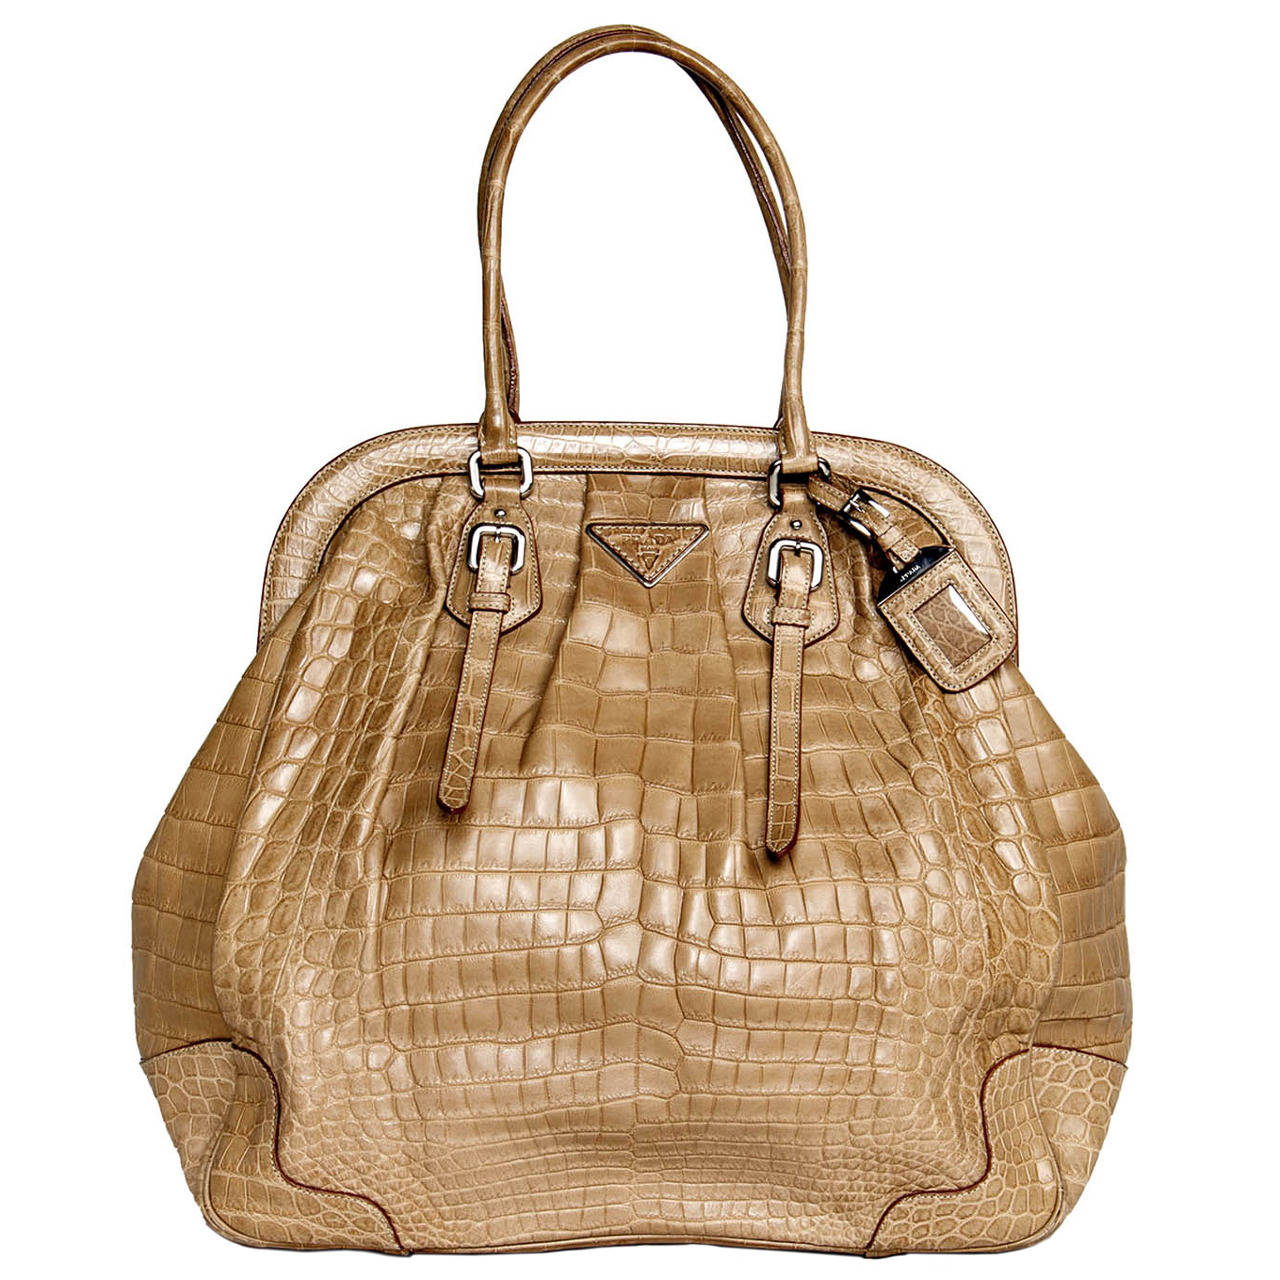 Prada Light brown crocodile bag with a vintage classic design